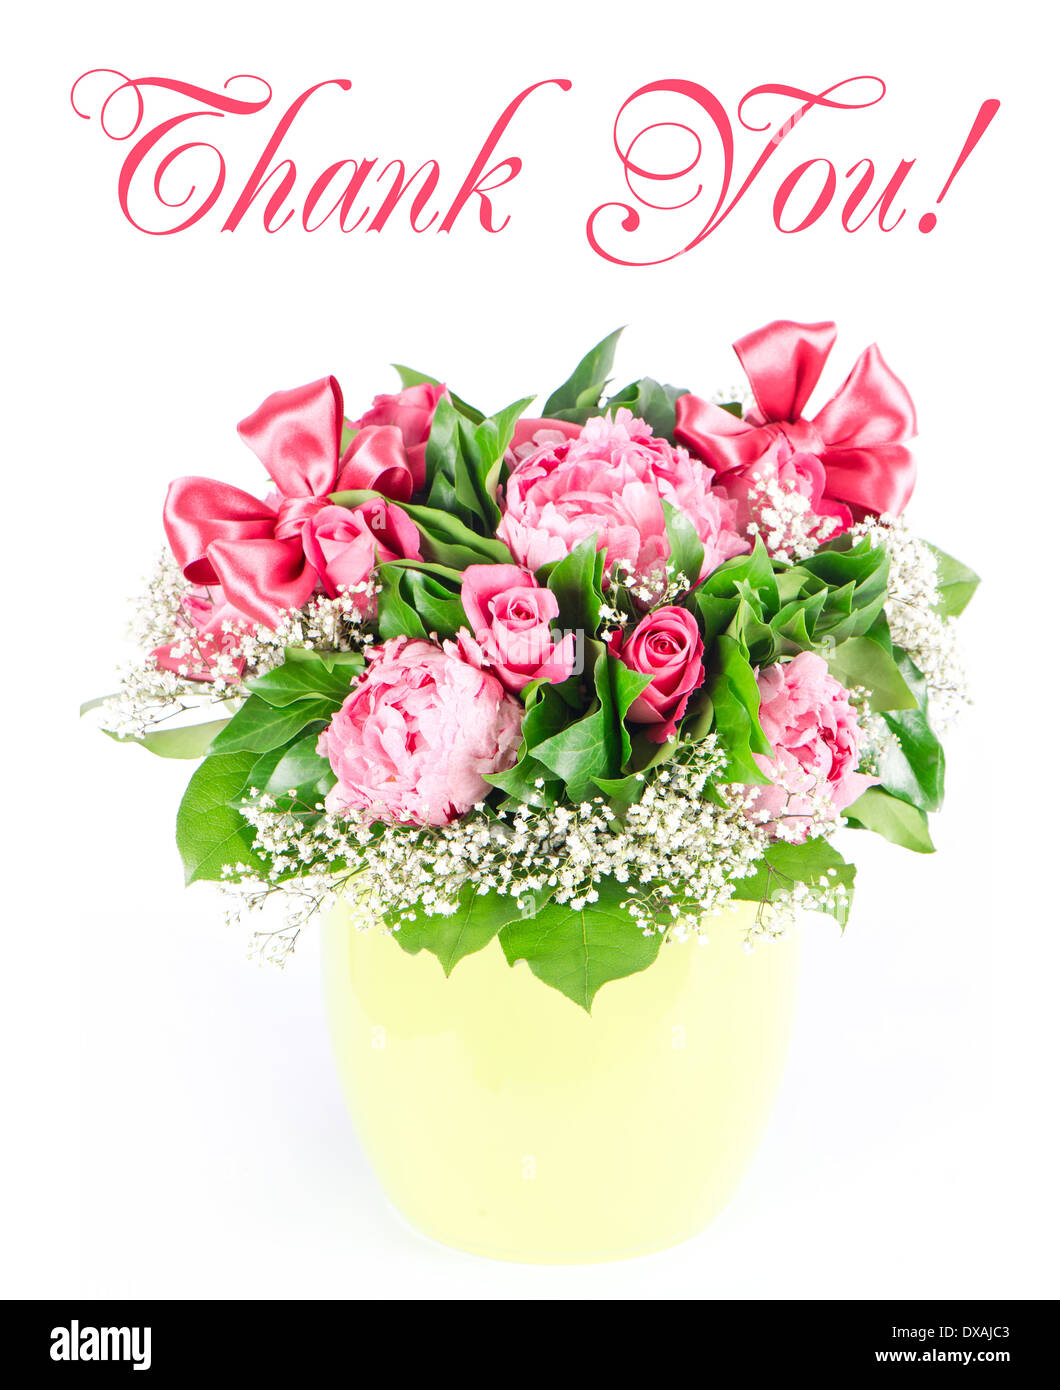 Thank you card concept colorful flowers bouquet with ribbon stock thank you card concept colorful flowers bouquet with ribbon izmirmasajfo